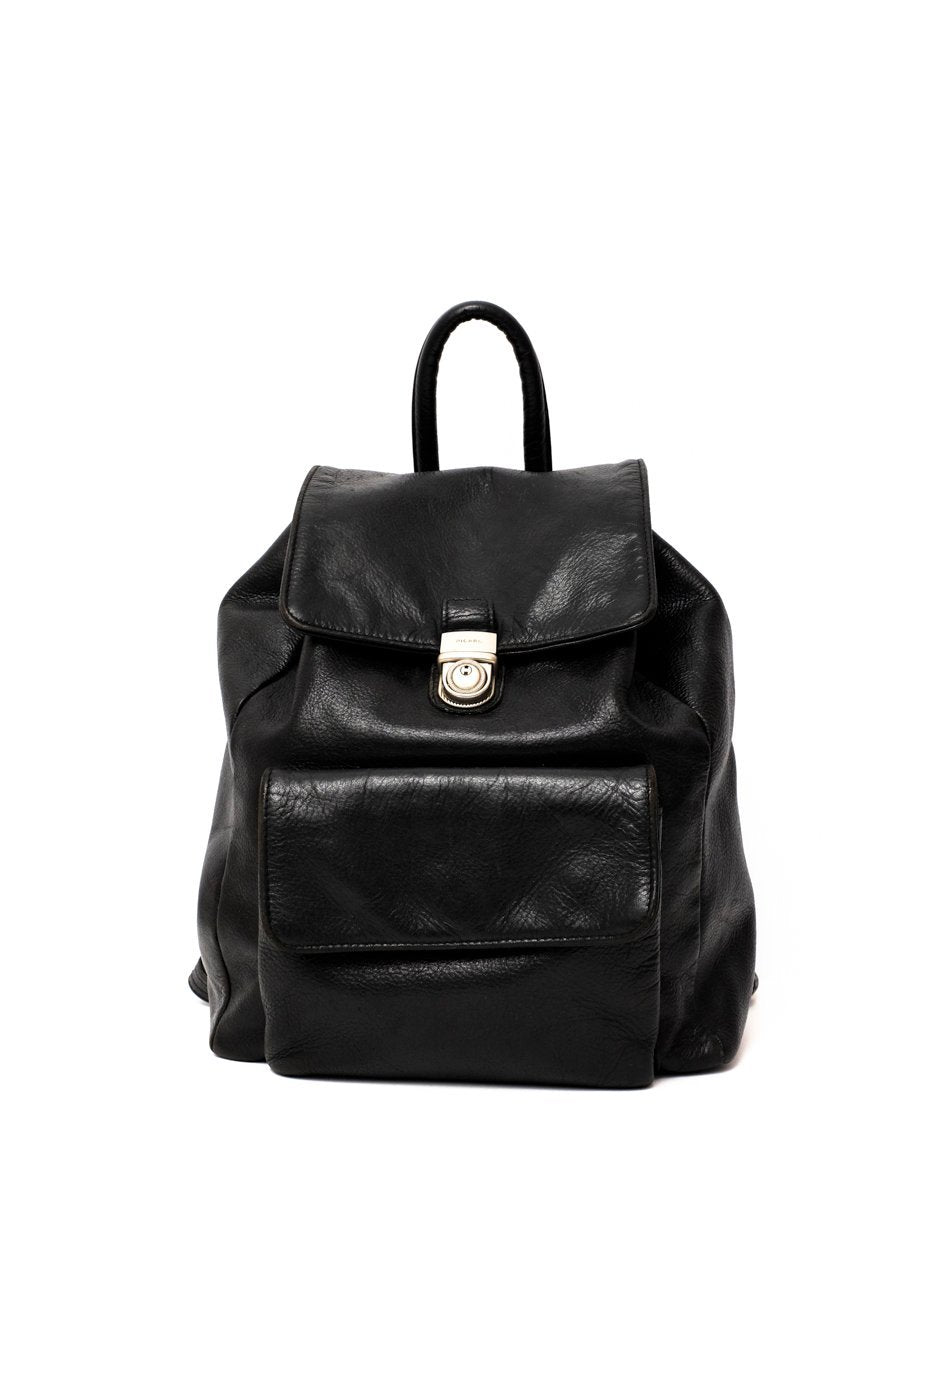 0317_PICARD BLACK CLEAN CHIC LEATHER BACKPACK